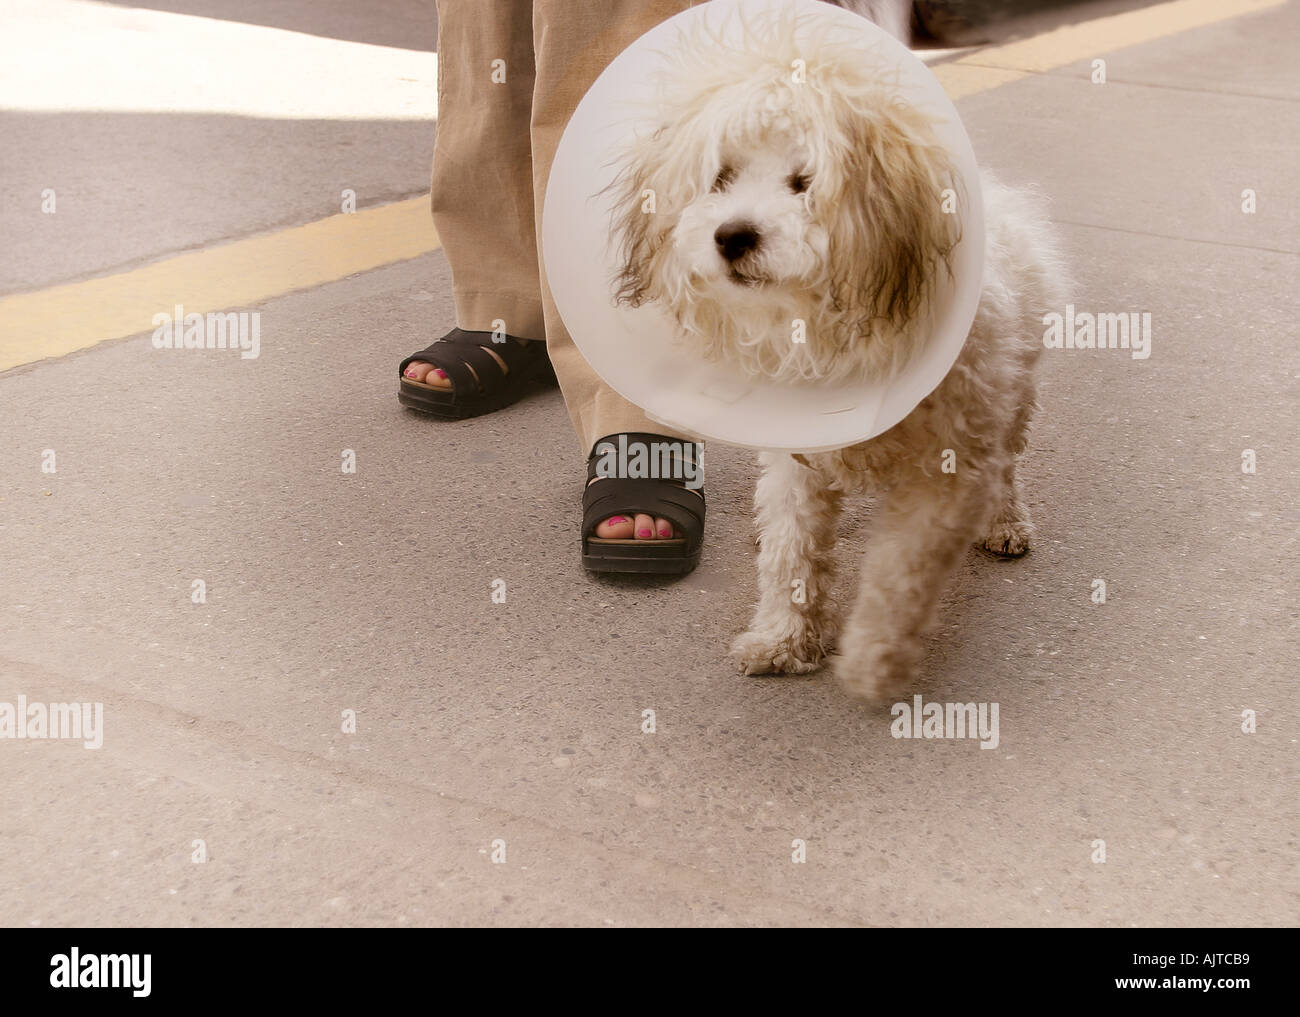 A dog with a cone around his head - Stock Image